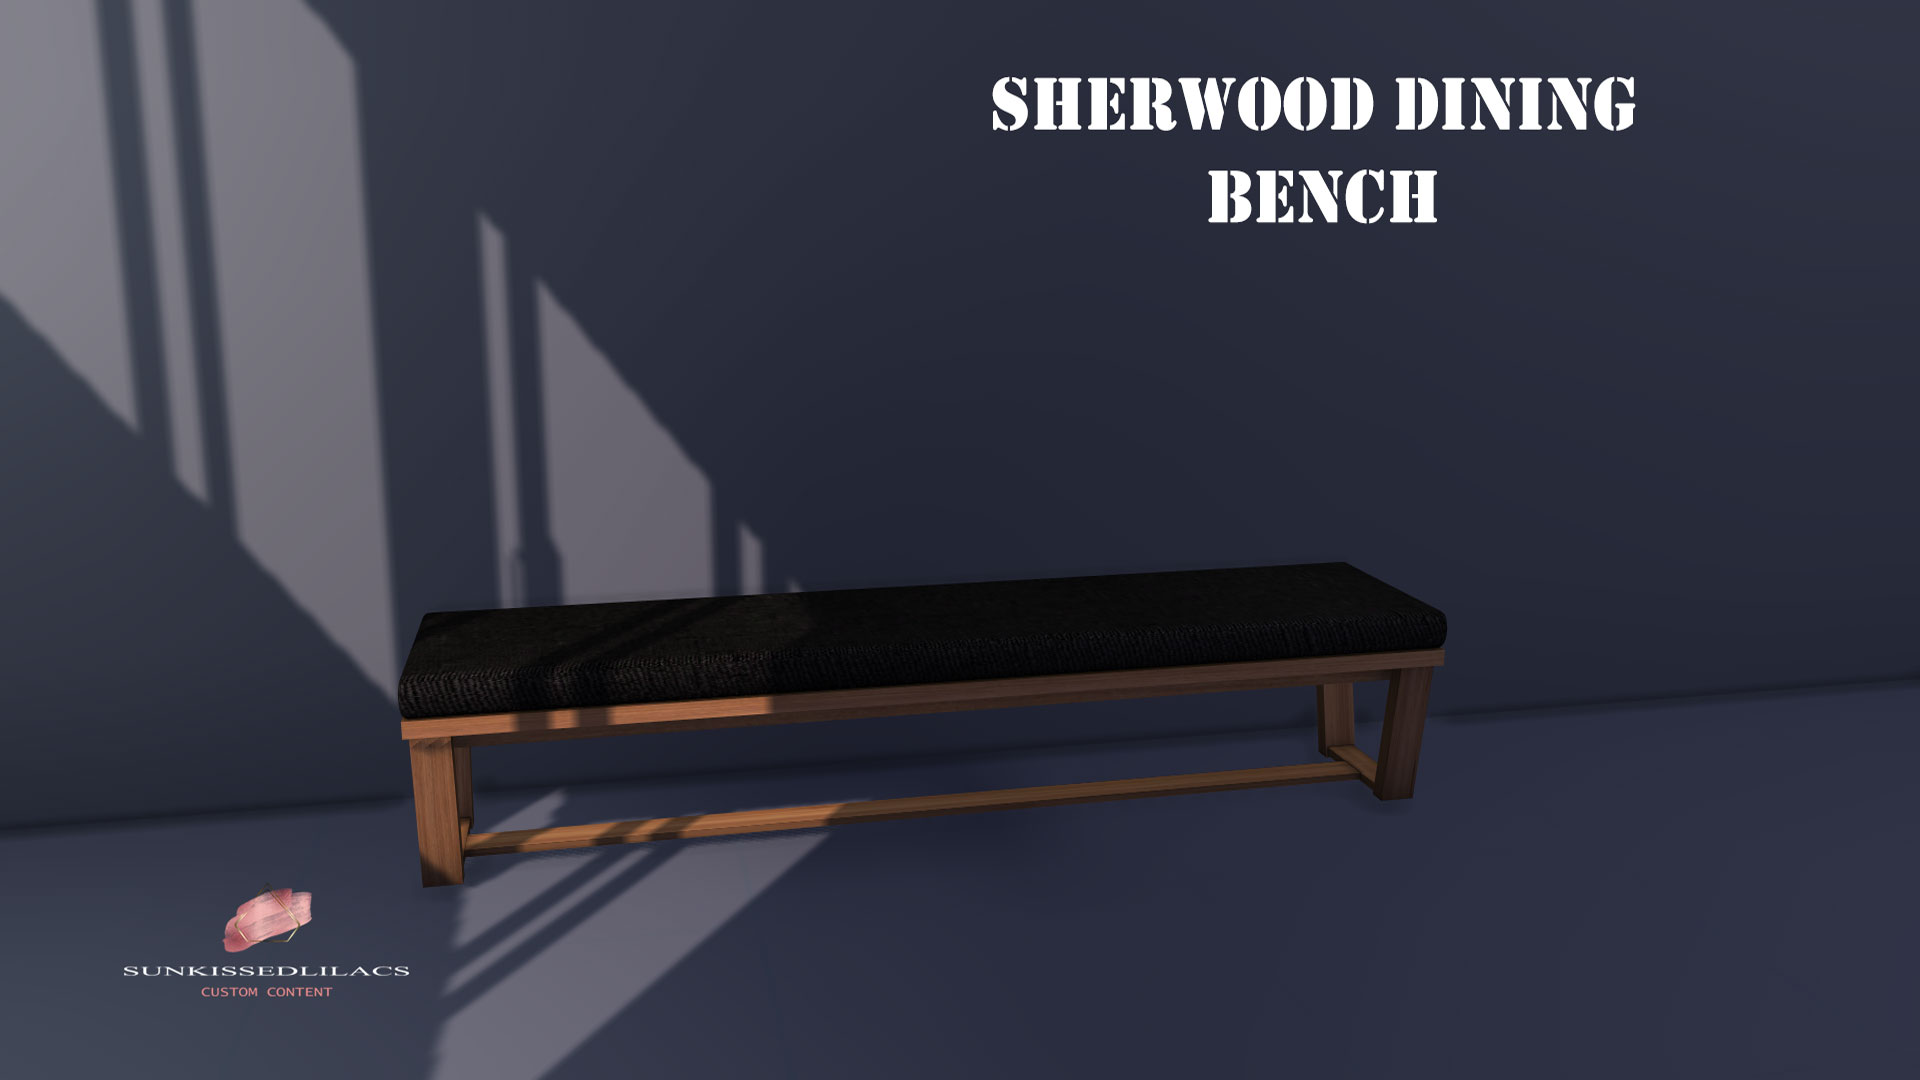 Sherwood dining bench-sunkissedlilacs-simms-4-custom-content